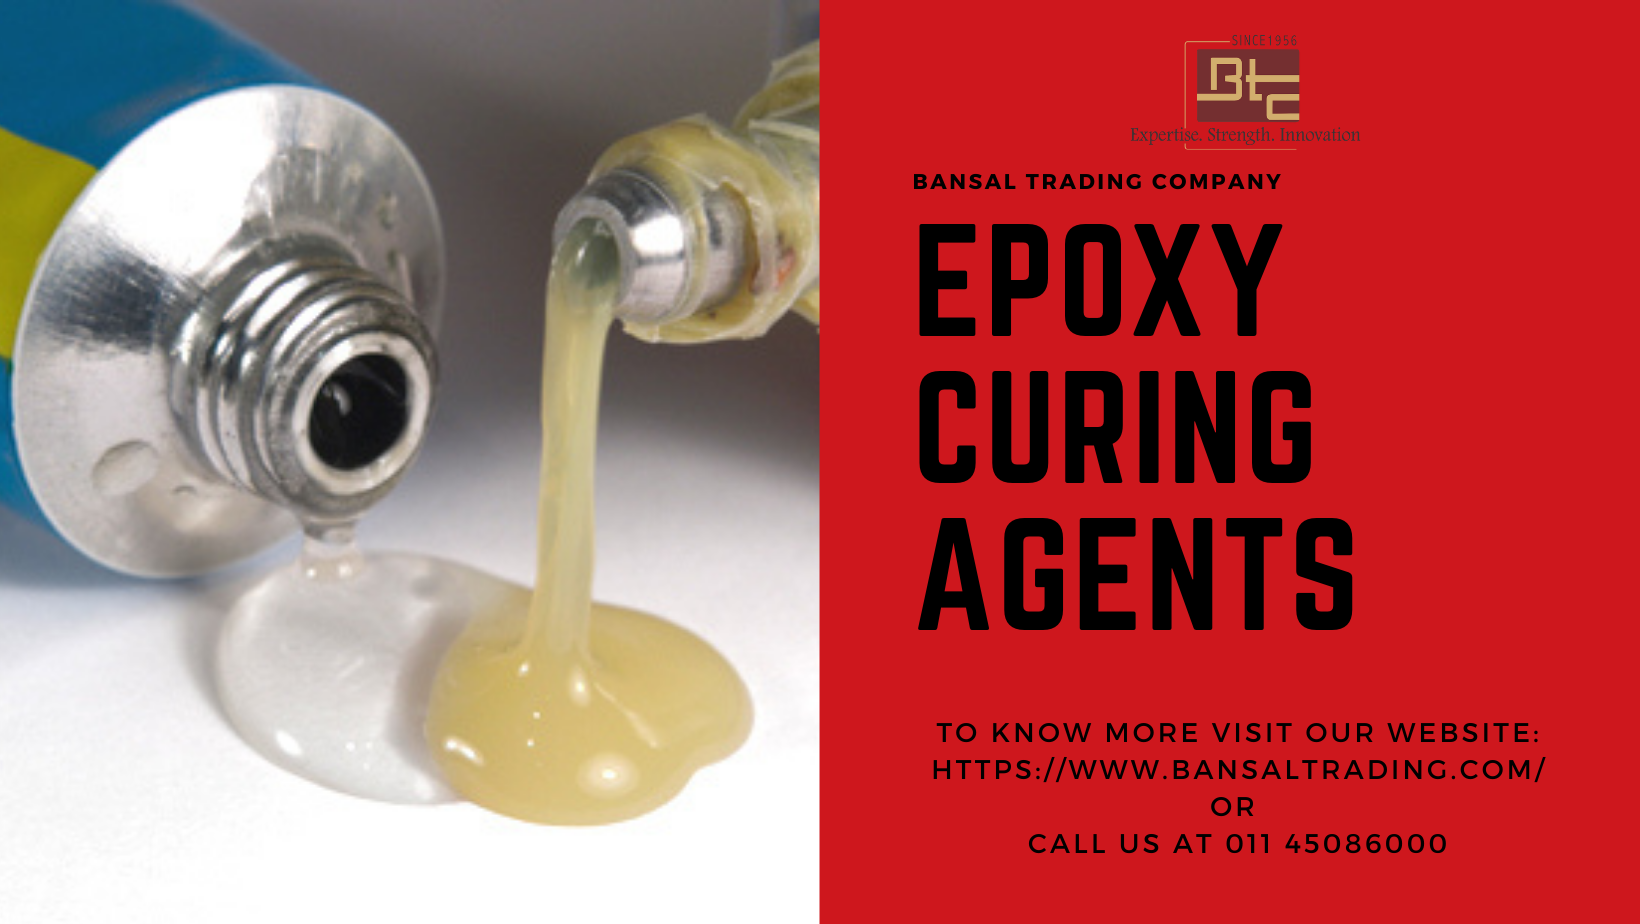 Types and advantages of epoxy curing agents